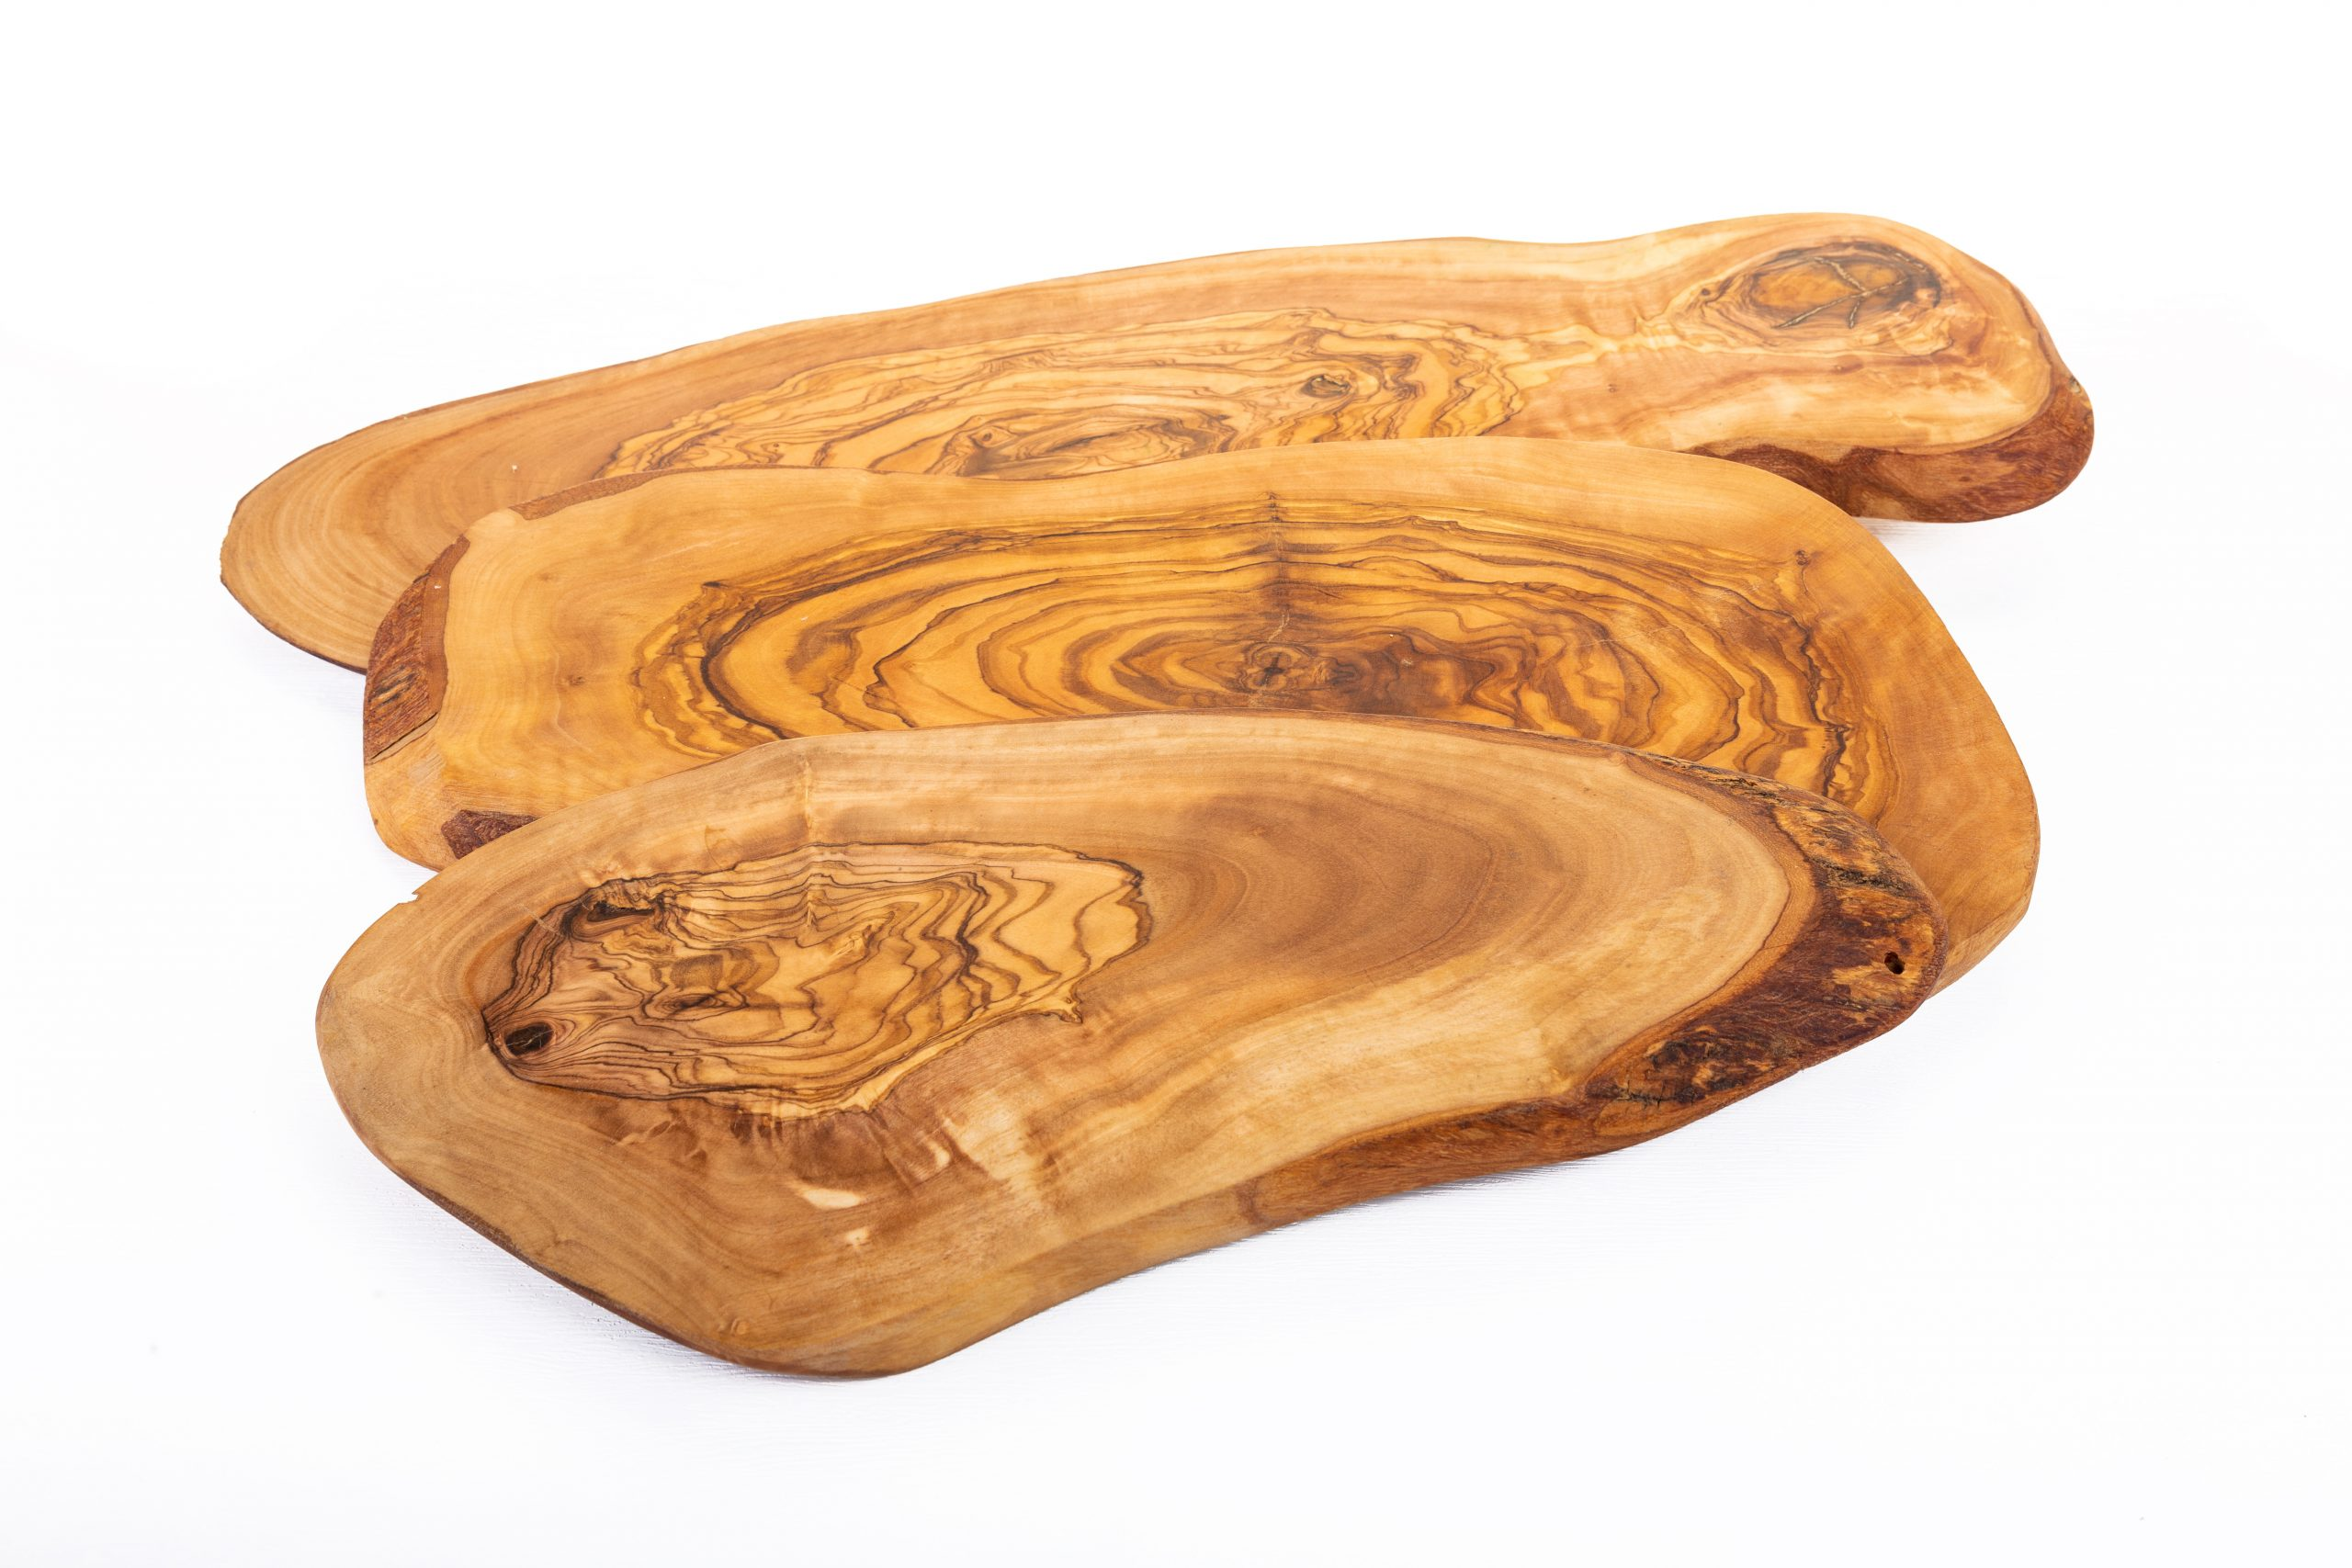 Olive Wood Rustic Cutting Boards Ruccello Olive Oil